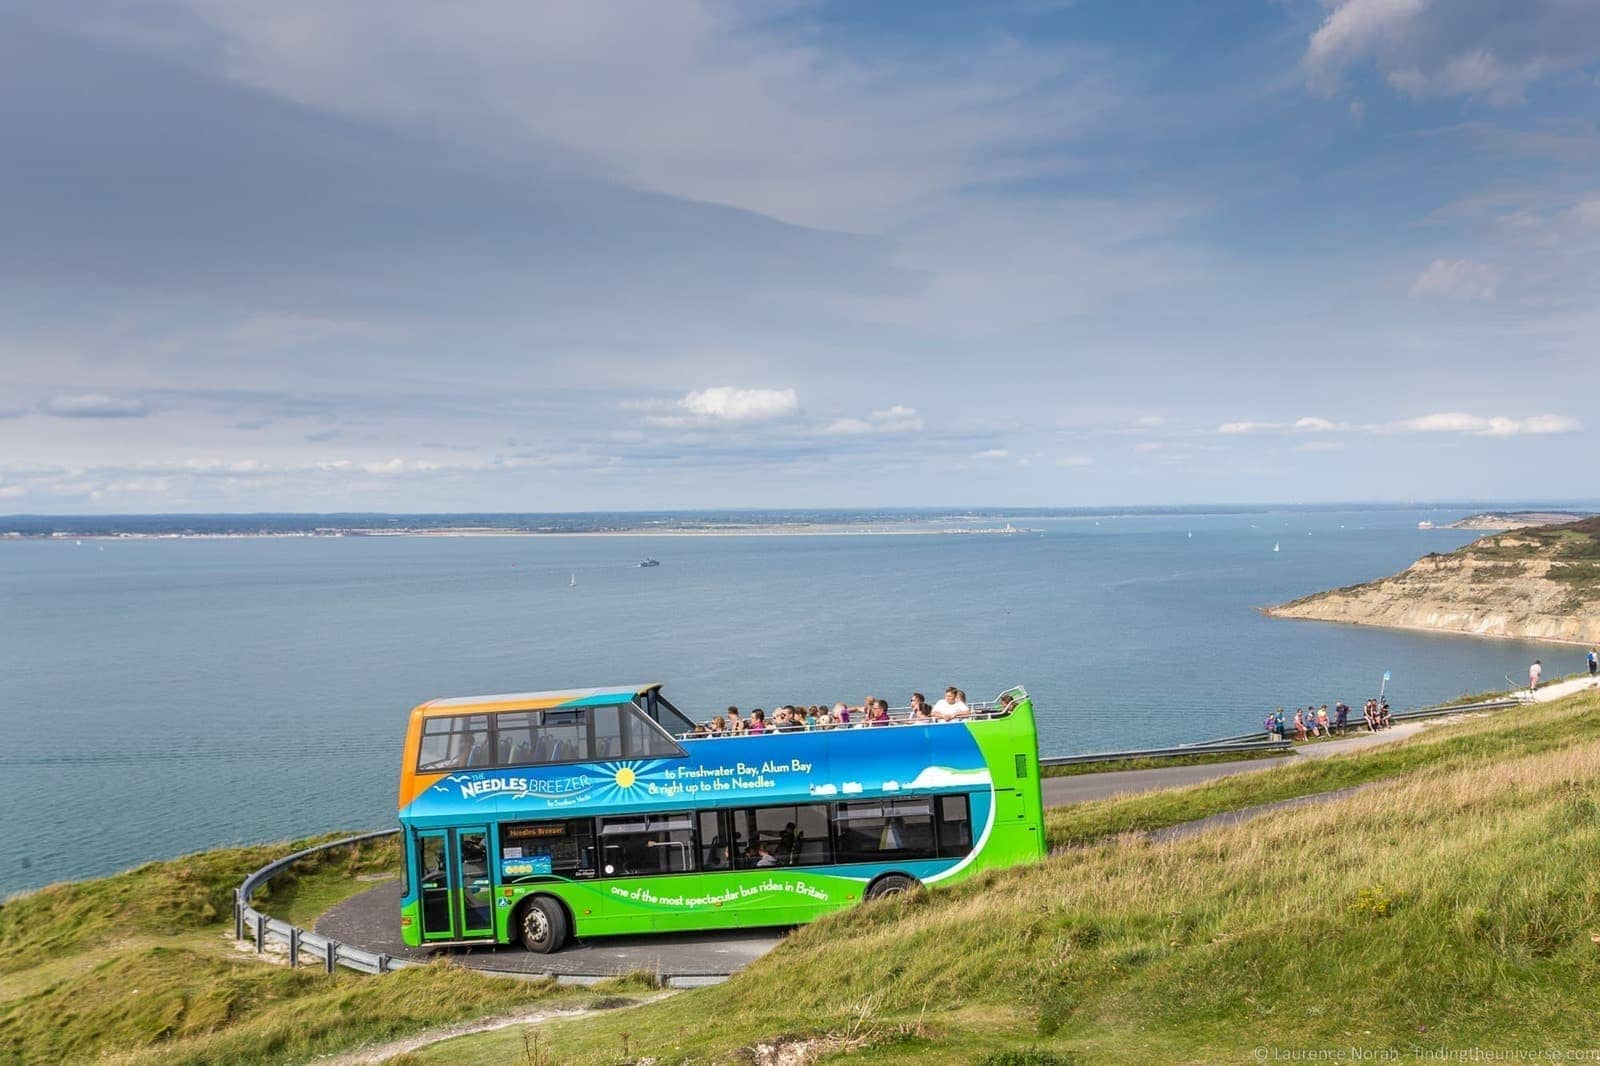 Isle of Wight bus